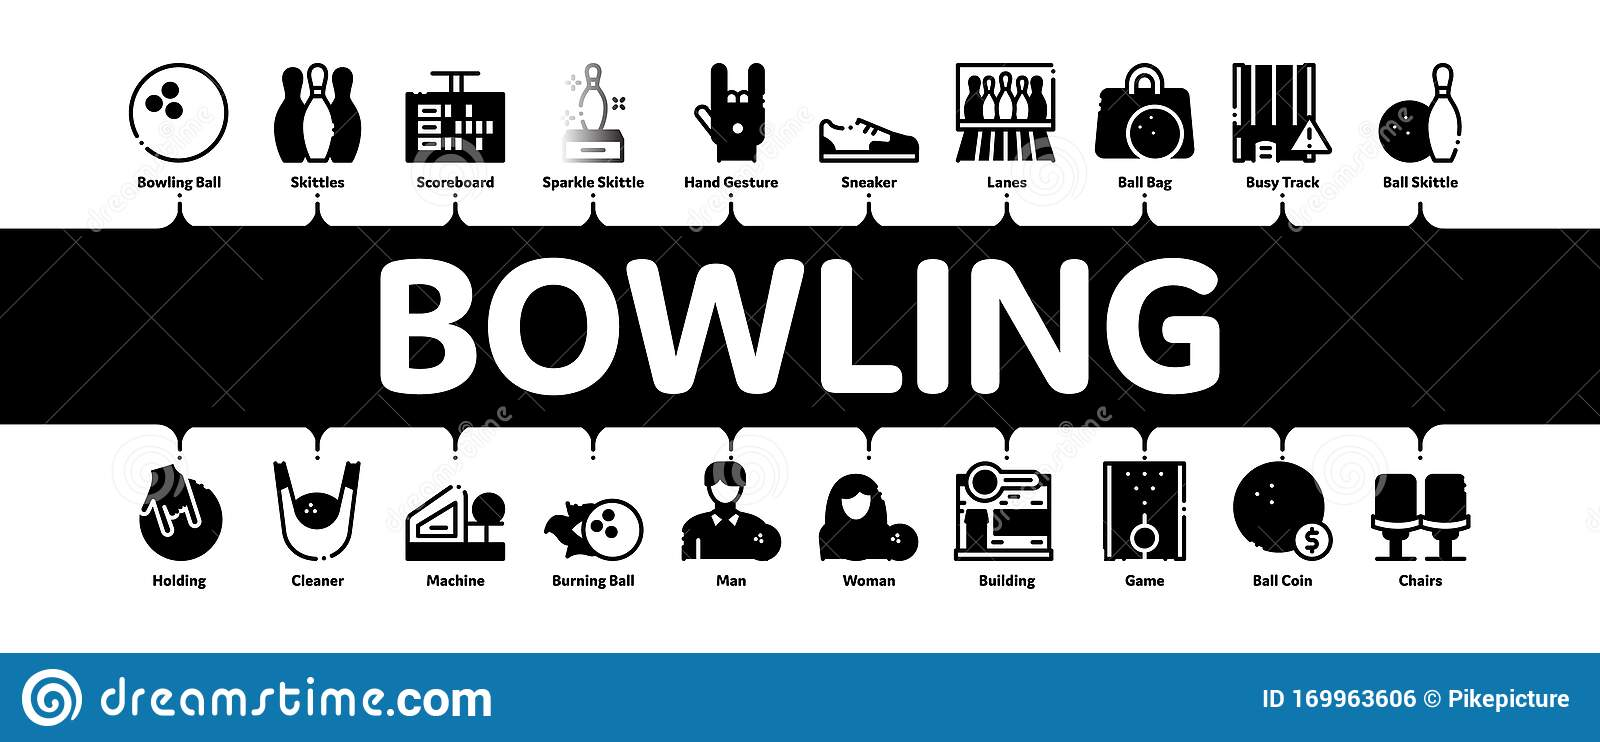 bowling game tools minimal infographic banner vector stock vector -  illustration of graphic, ball: 169963606  dreamstime.com